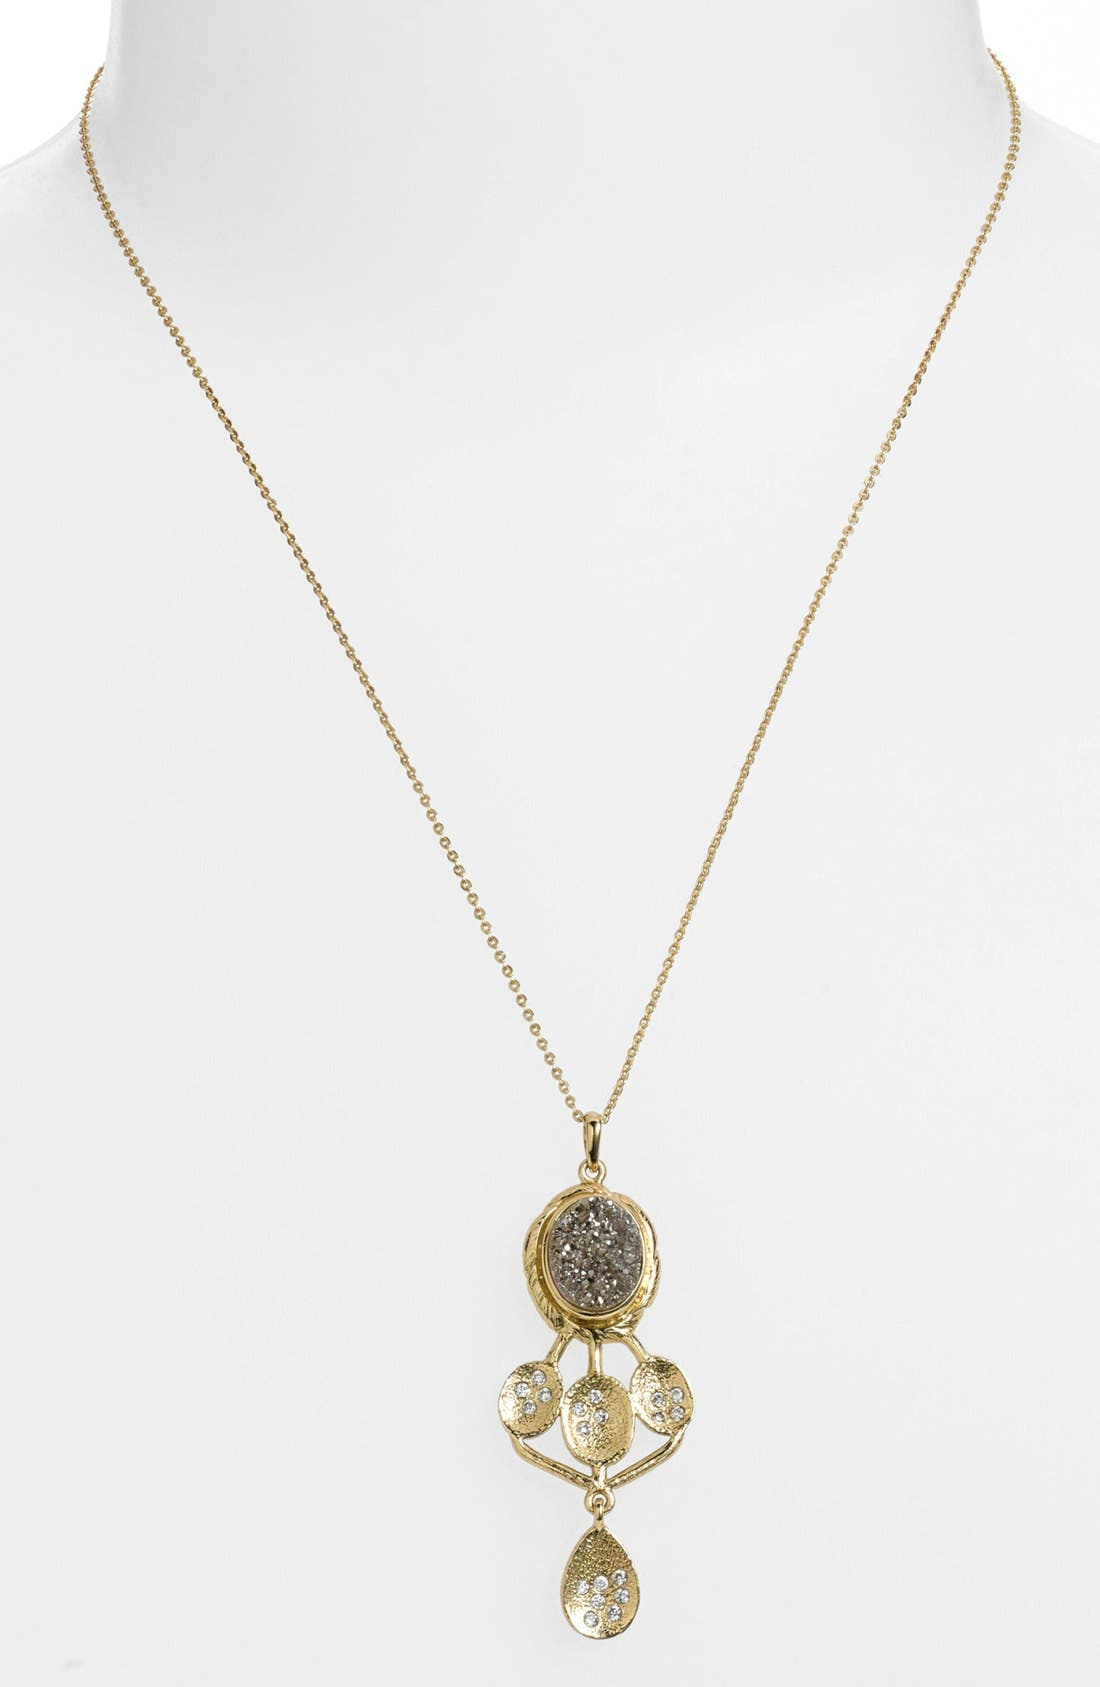 Main Image - Melinda Maria 'Julian' Pendant Necklace